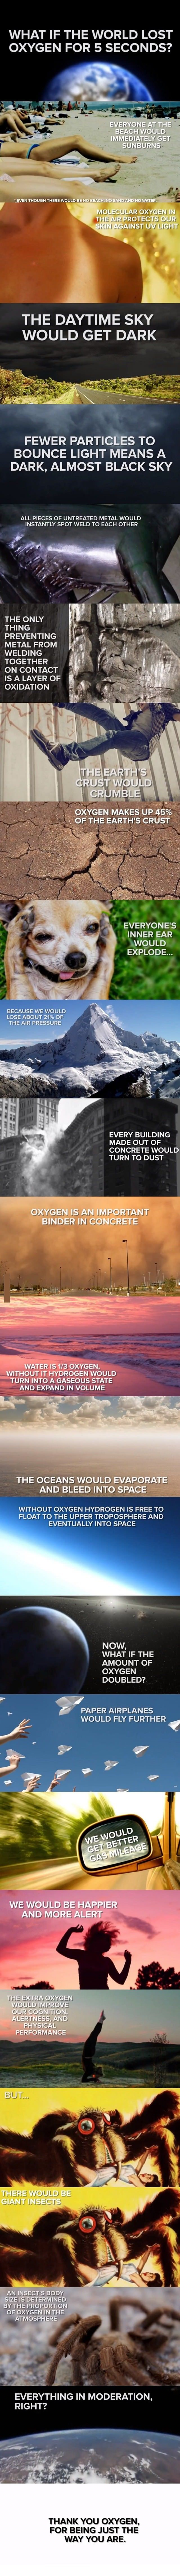 What if the world lost oxygen for 5 seconds? | ScienceDump